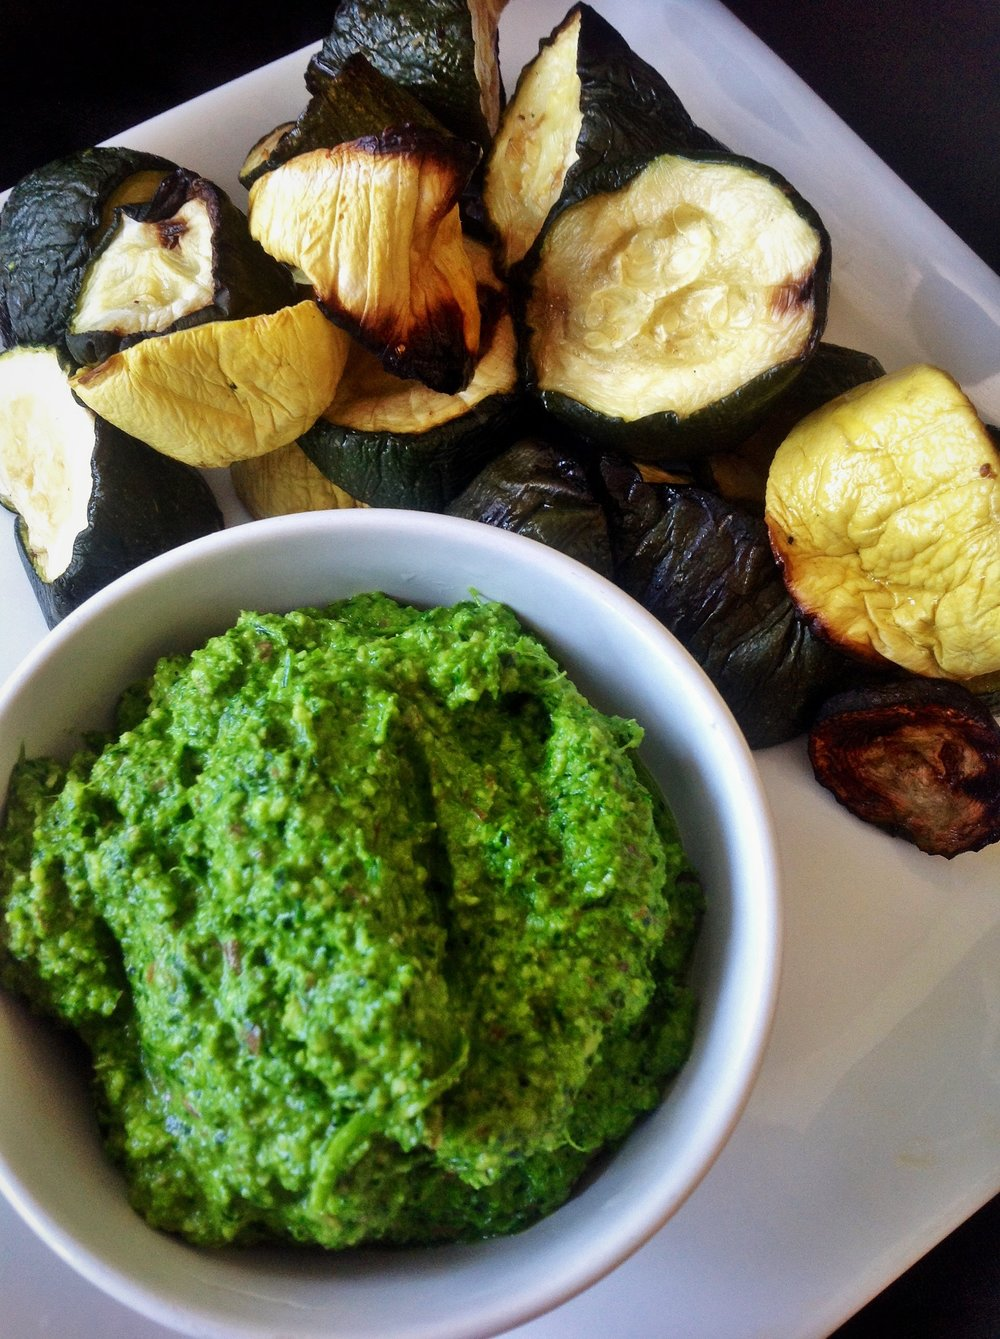 Watercress Parsley Pesto - Healthy, Oil-Free, Gluten-Free, Easy, Plant-Based Vegan Sauce Recipe